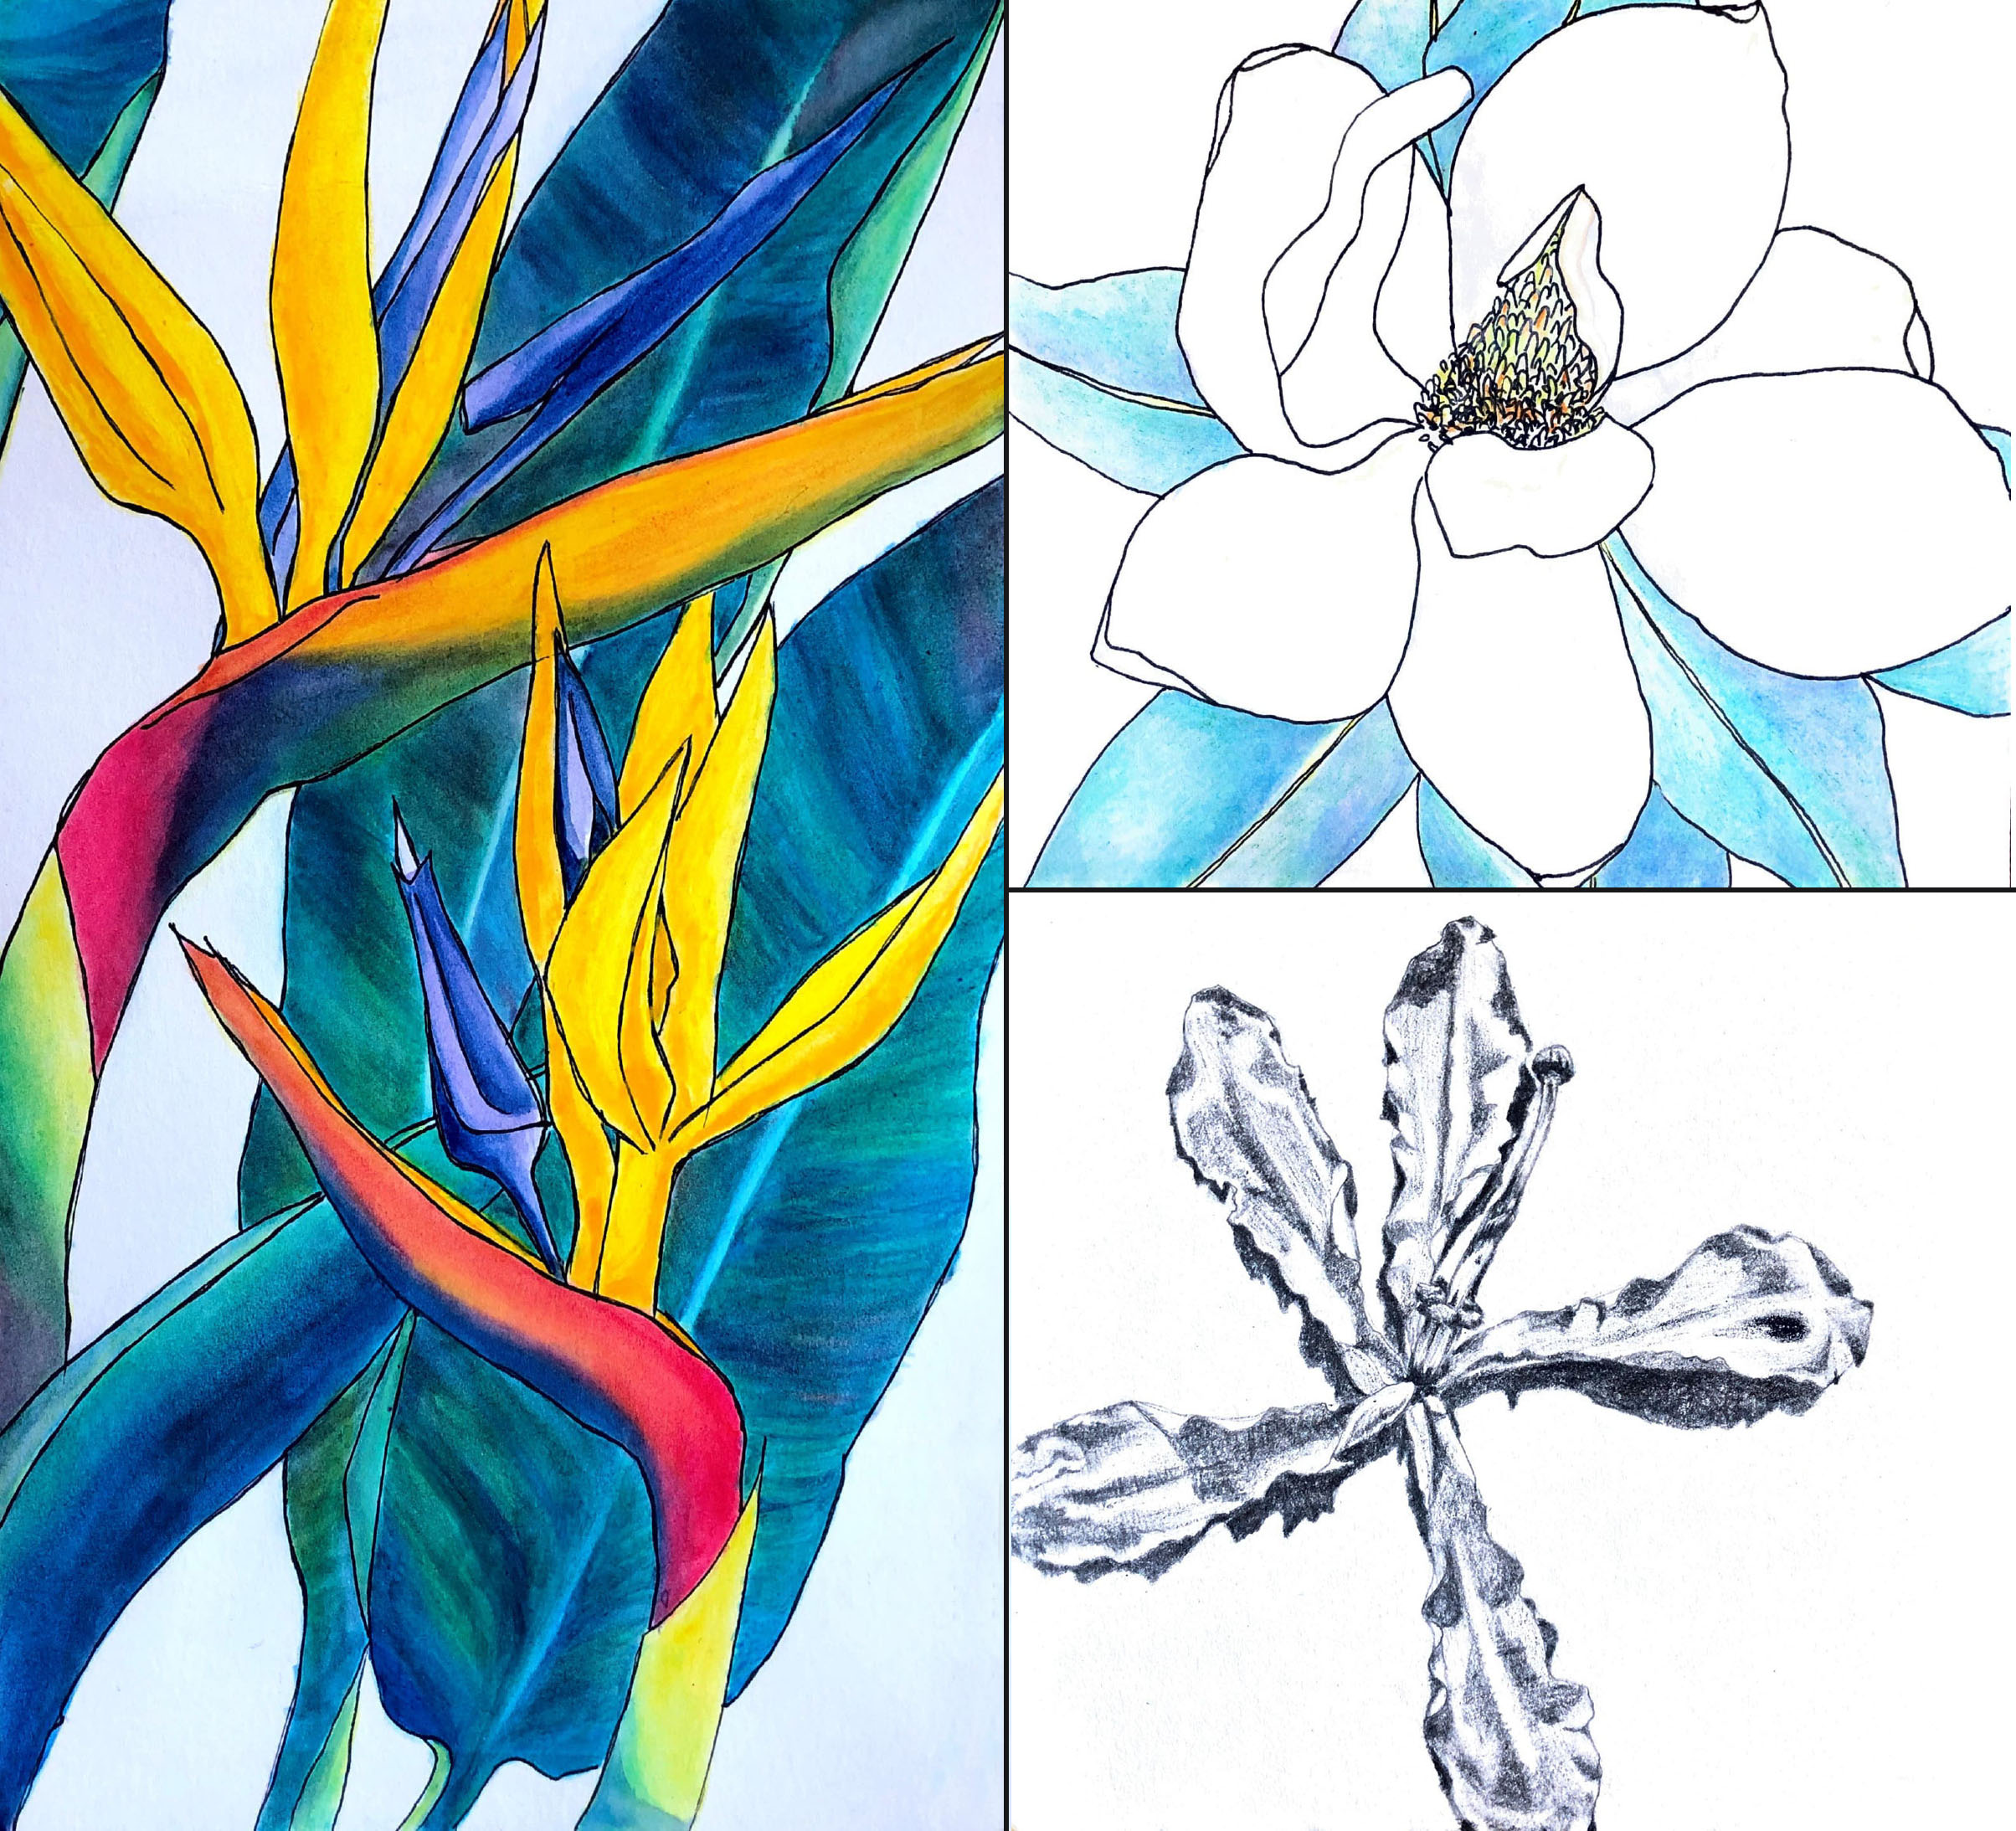 fine art flowers, colored pencil and watercolor on paper